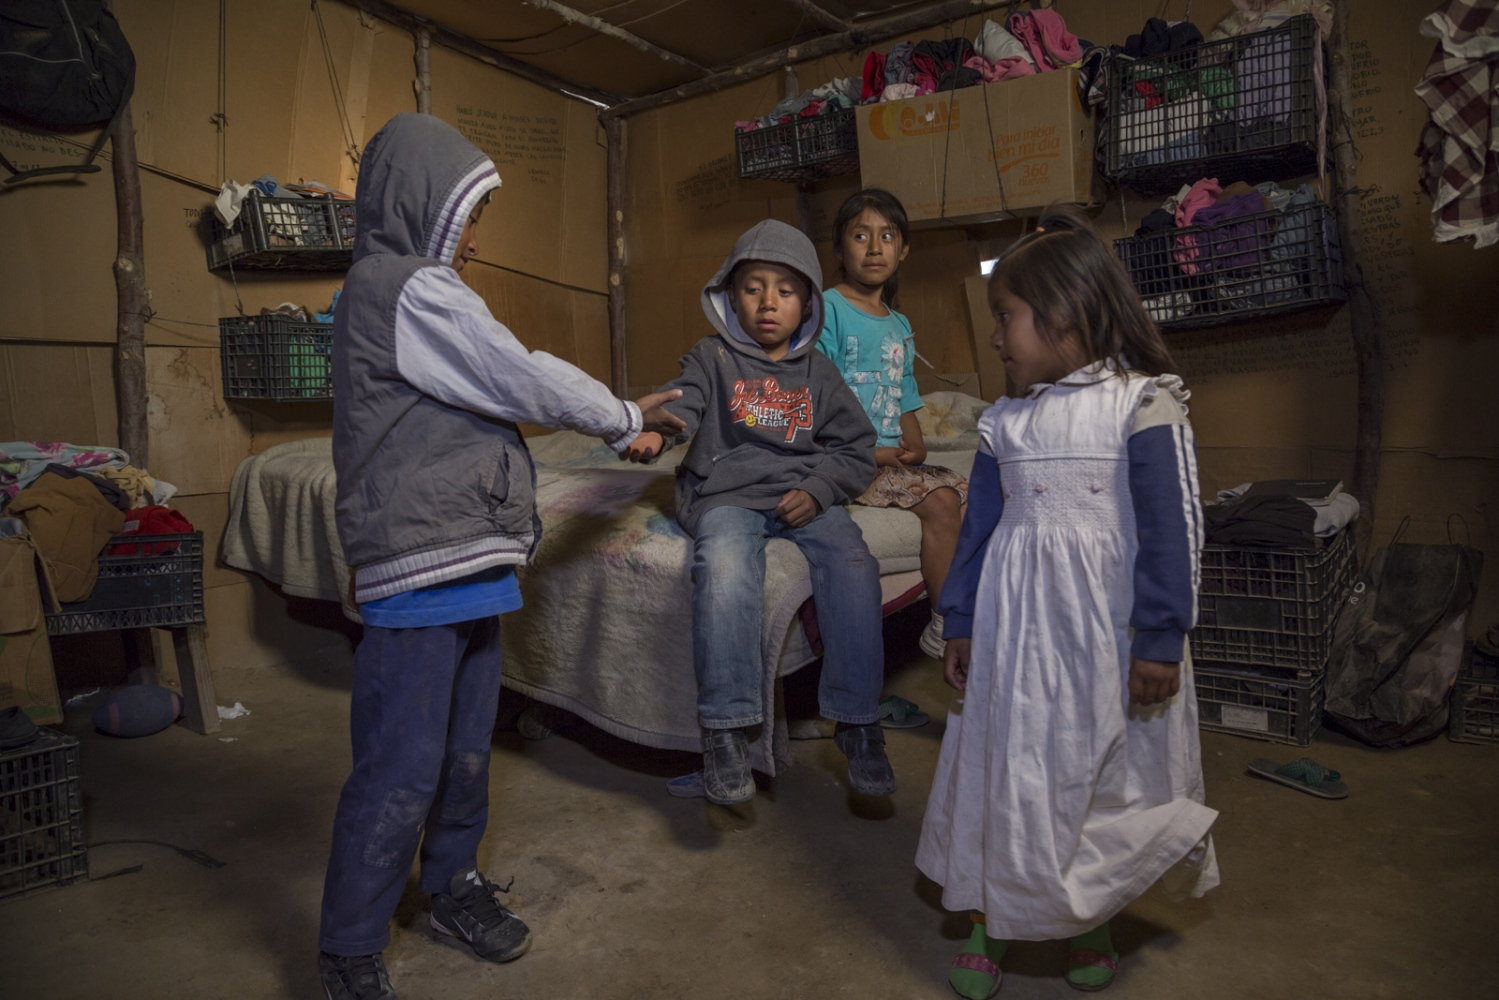 Siblings Juan Carlos, 6, Lizbeidy, 3, Luis Angel, 7, and Yolet, 9, play in their room of their house made of cardboard and plastic in the San Quintin valley in Mexico. Their parents work in the fields handpicking strawberries for 9 U.S dollars a day sometimes working more than 12 hours.